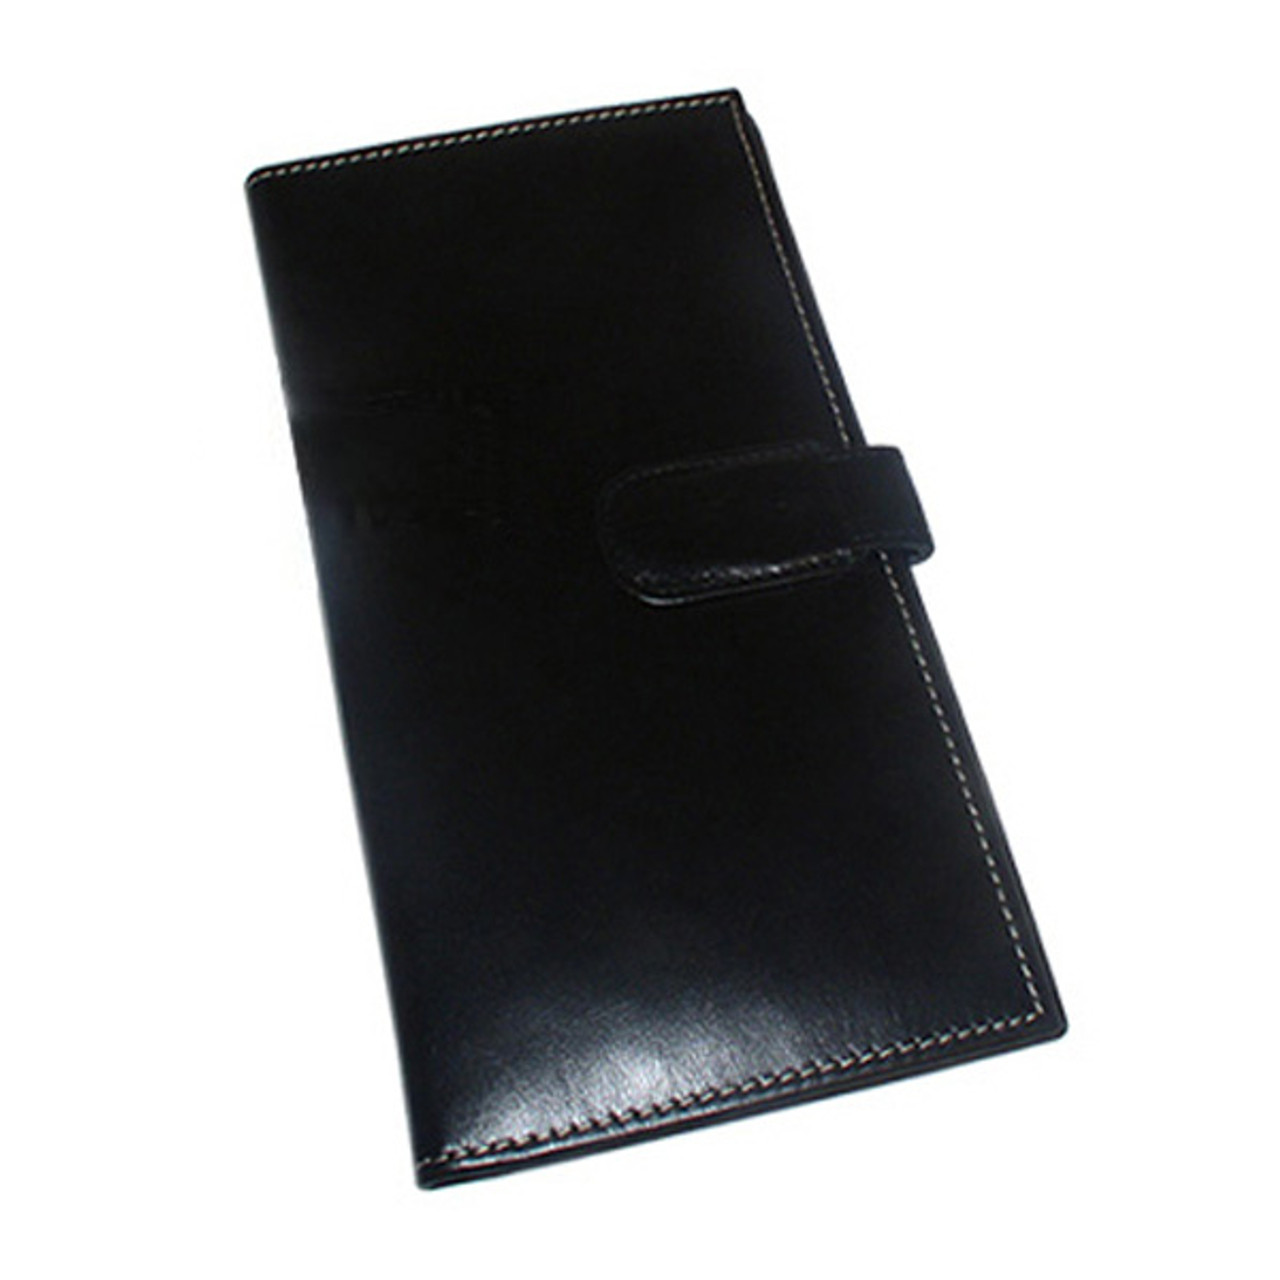 Leather Passport Boarding Pass Ticket Wallet Available In Black